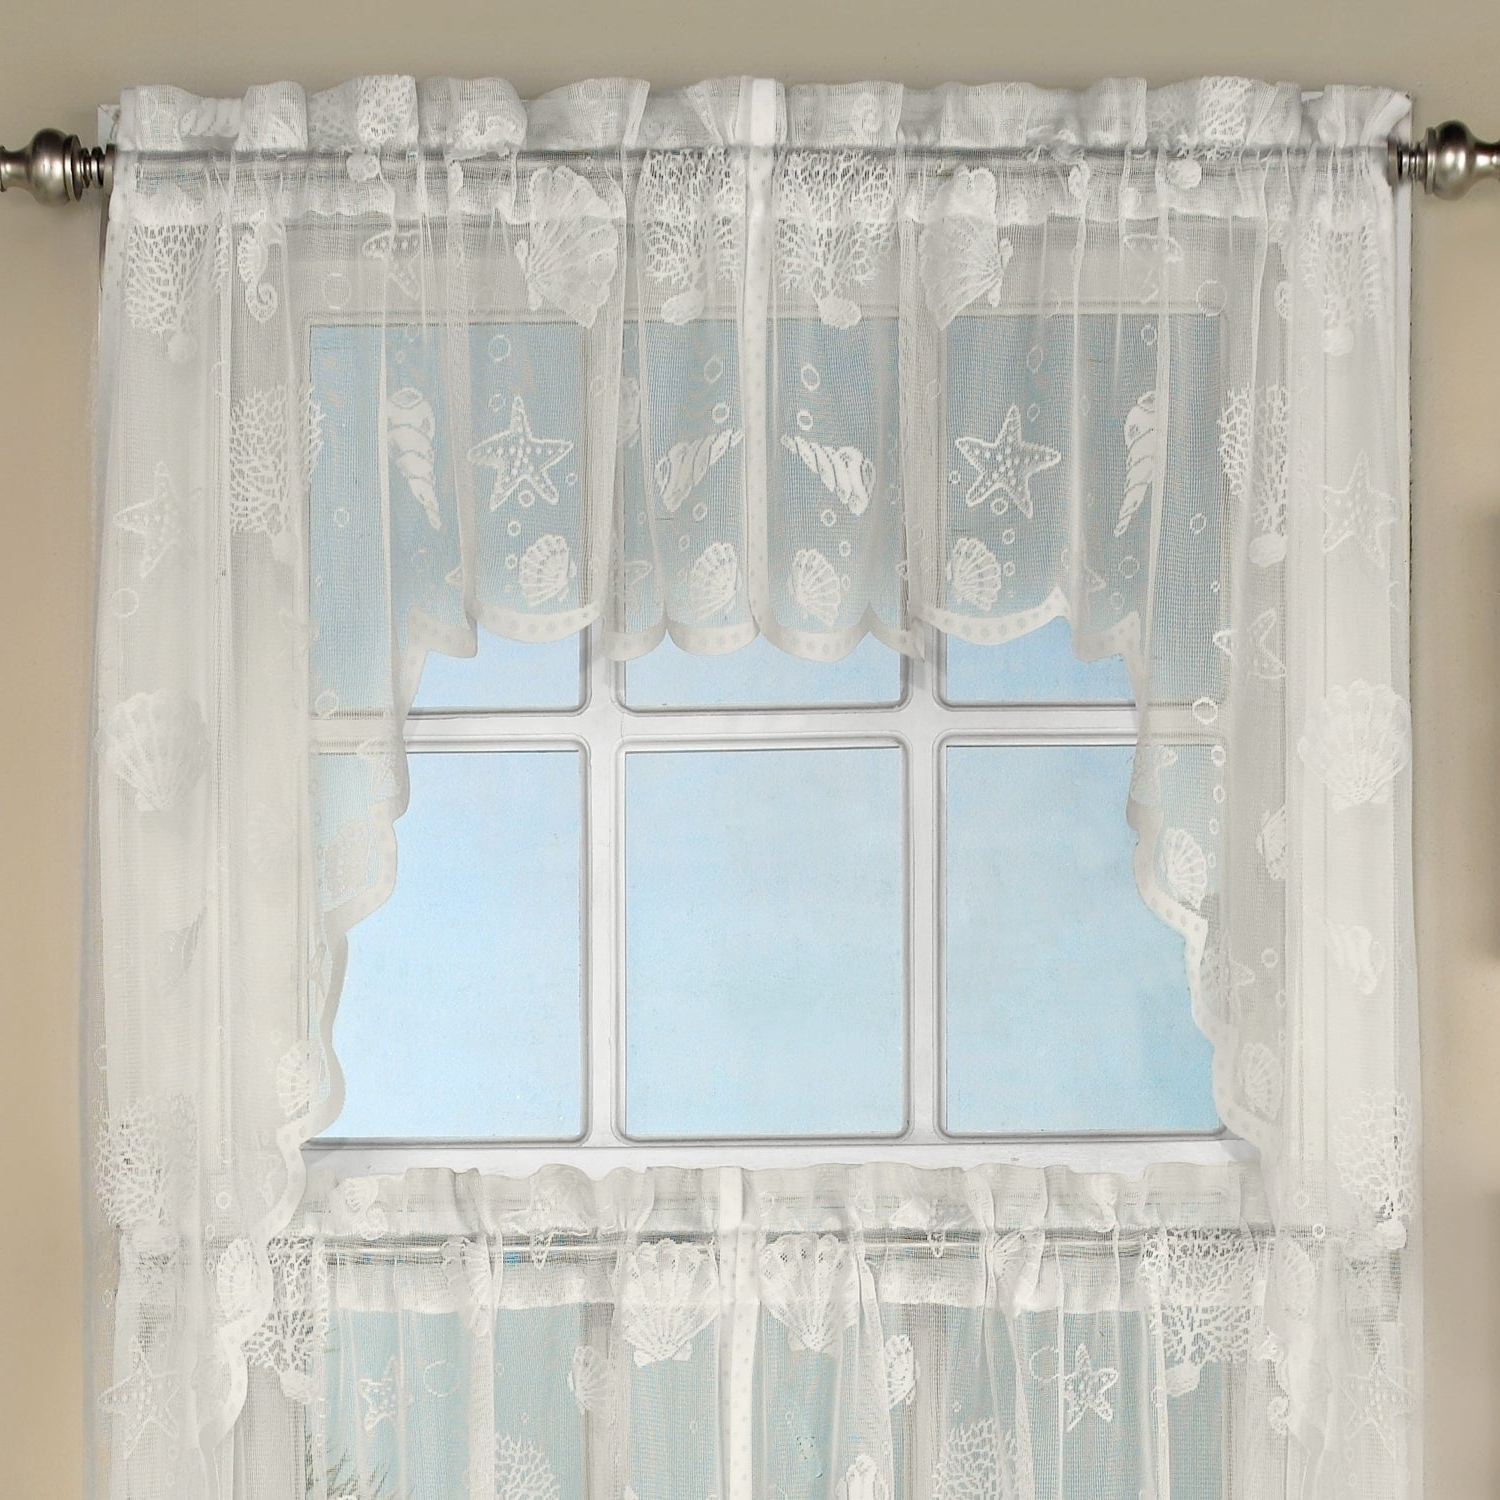 Popular White Knit Lace Bird Motif Window Curtain Tiers In Marine Life Motif Knitted Lace Window Curtain Pieces (View 13 of 20)